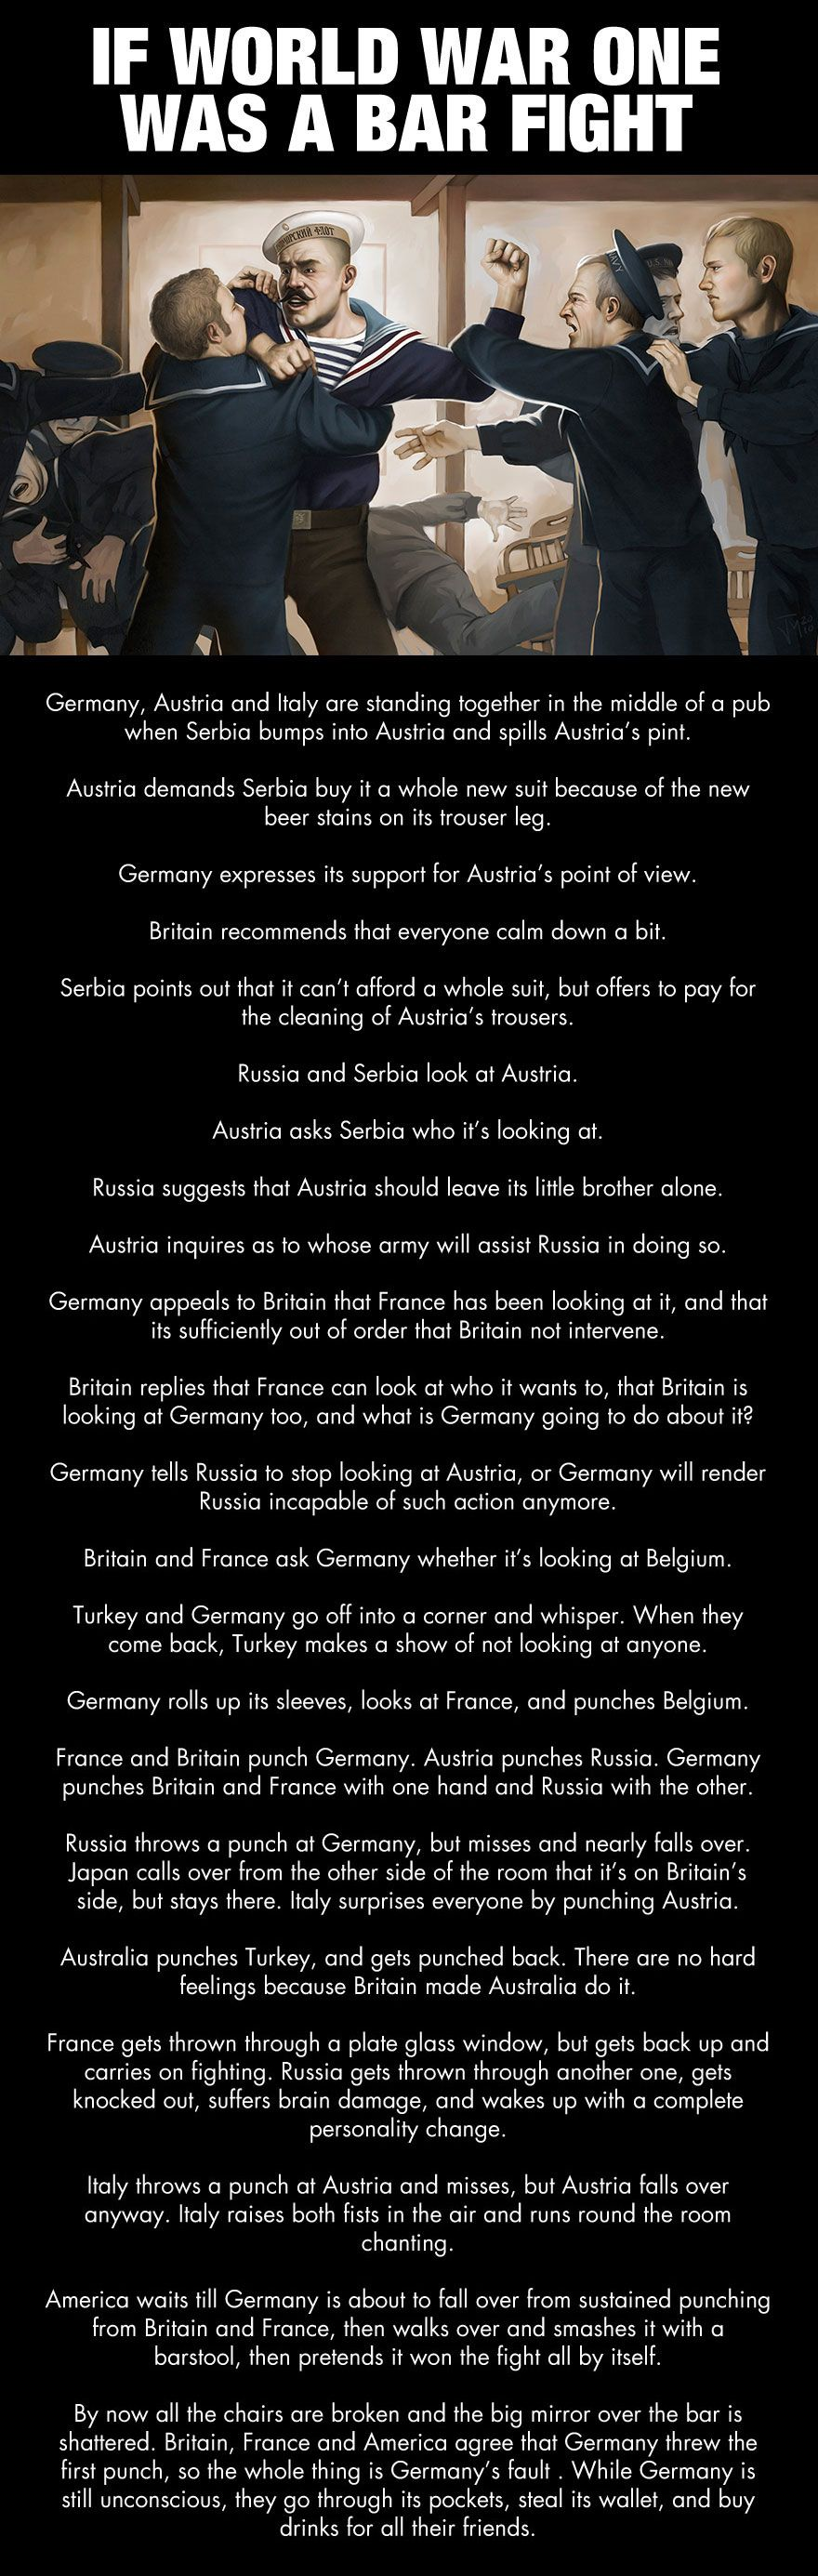 If Wwi Was A Bar Fight History Memes World War One History